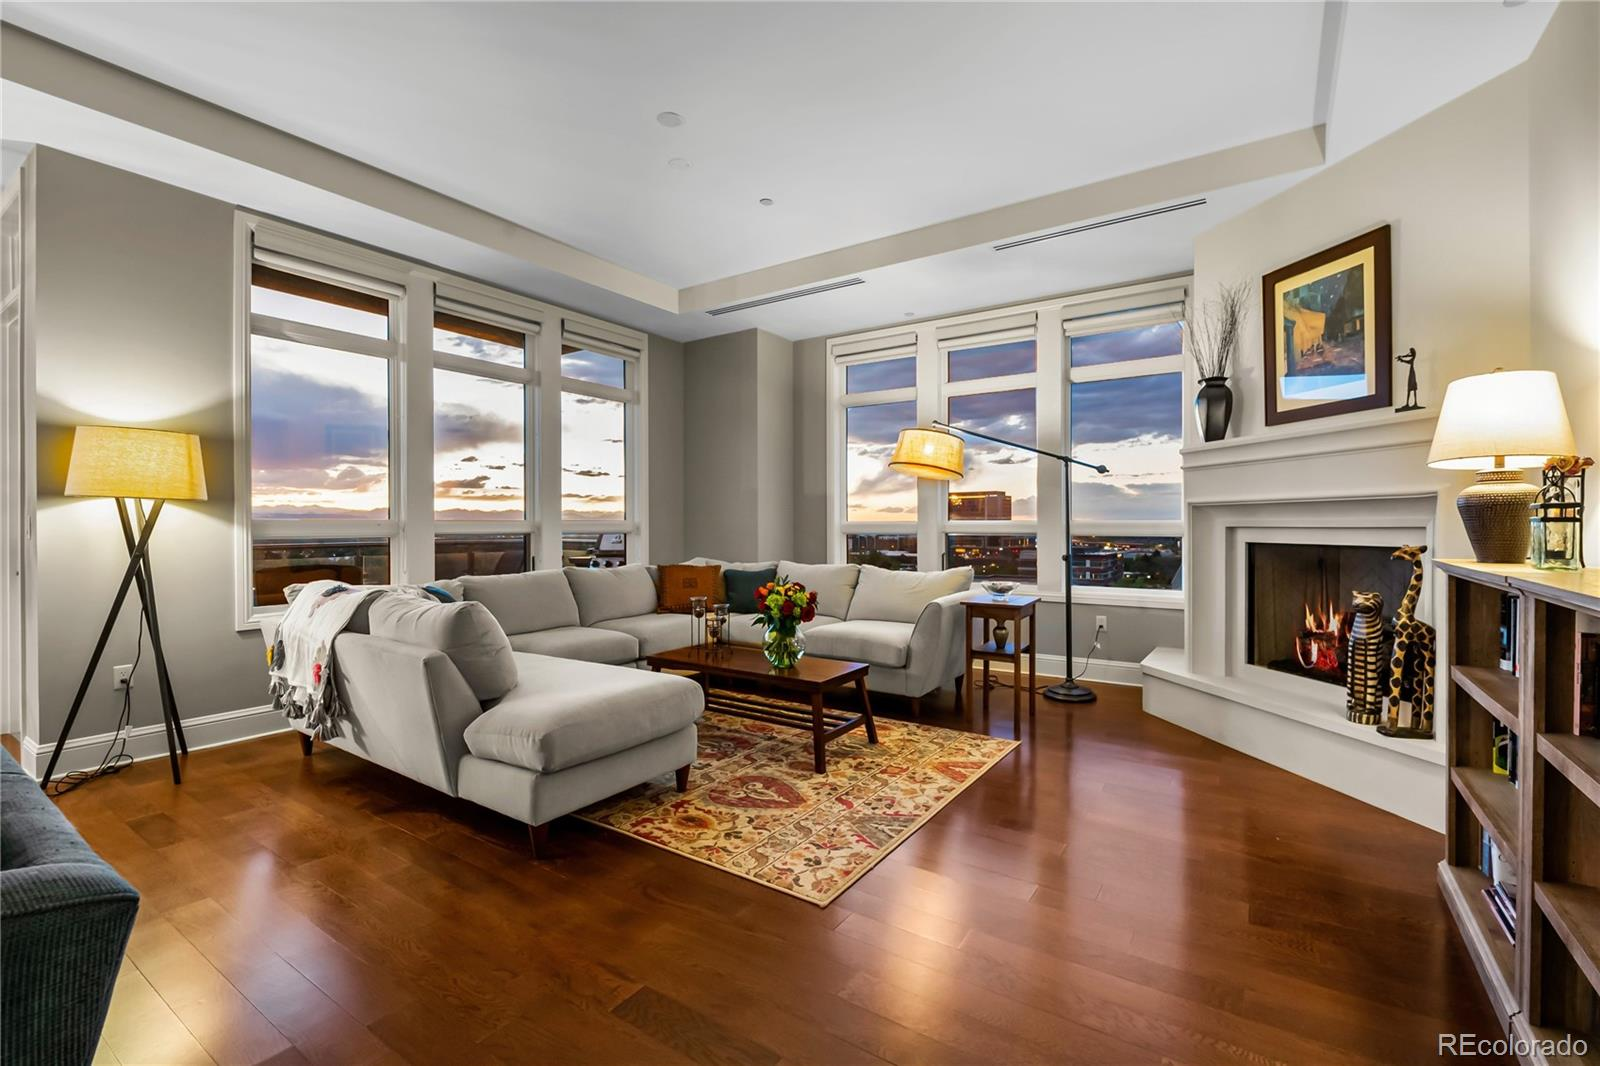 Large two bedroom residence on West side of the West Tower with views of the Mountains and Downtown Denver.  Located in the Northwest corner, it is very private with an abundance of natural light. The living area is very spacious and allows for several seating variations with a unique and beautiful corner fireplace.  Plenty of counter space in this large kitchen with GE Monogram Appliances like cooktop, oven, microwave/convection, refrigerator and dishwasher. There are two balconies with the main balcony facing West and the second balcony off of the master bedroom. Master suite is complete with large walk-in closet and 5 piece bath. Secondary bedroom is adjacent to the second bath and laundry area. Second bedroom is currently being used as an office or create another office space in the extra large living area. The residence comes with 2 assigned parking spaces #139 and #140 and garage level storage locker. The wine storage locker is located in the main floor, temperature controlled wine room. Enjoy all the luxury amenities The Landmark has to offer including concierge, 2 fitness centers, 2 pools, 2 spas, sauna/steam, 2 business centers, party room, library, guest suites and much more. No need to travel too far for great restaurants, entertainment and exercise venues, as the Landmark retail area has it all. To view the virtual tour with floor plan please visit: https://tours.muntzstudios.com/1605225